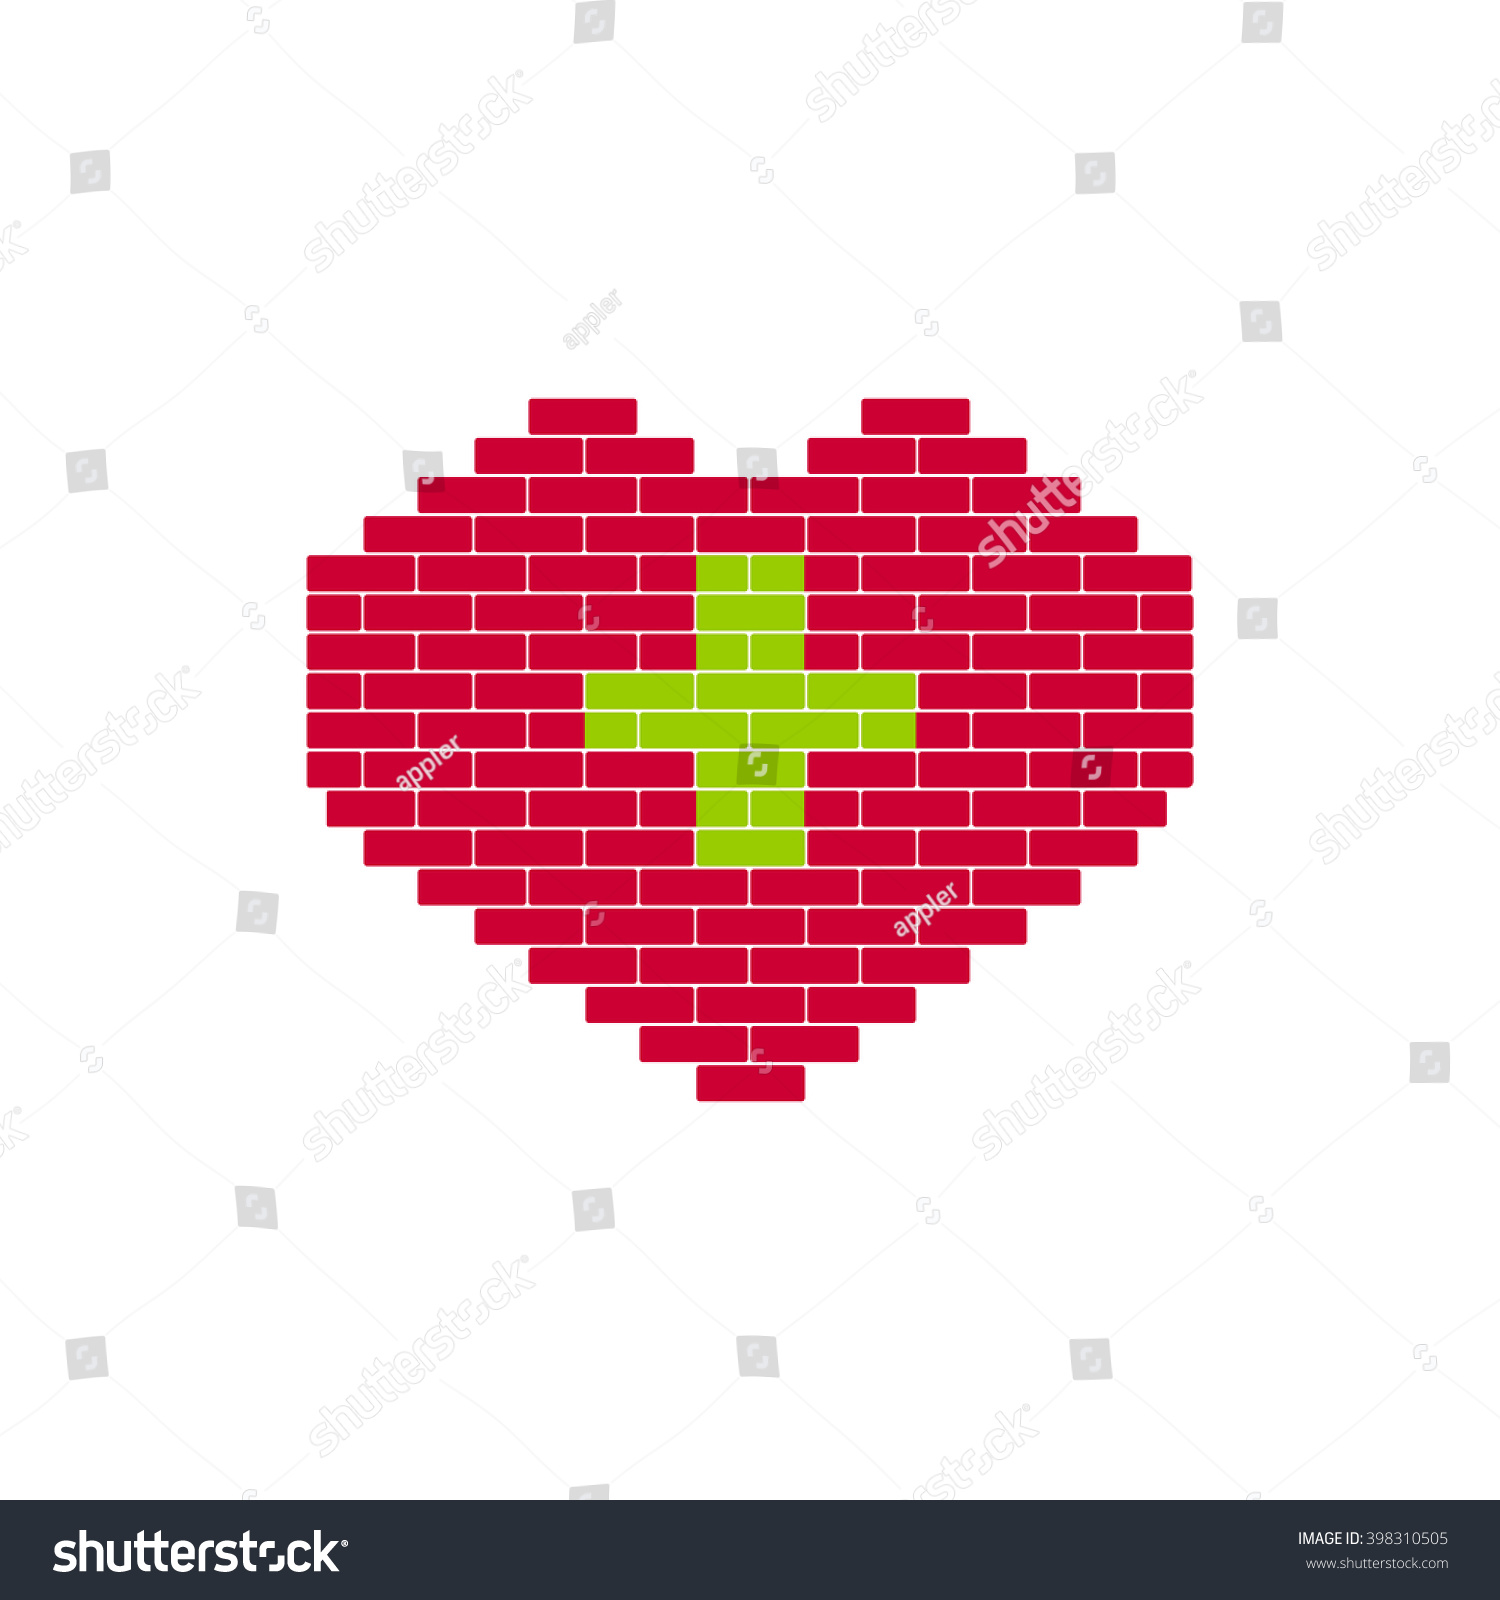 Heart Shape Created From Building Bricks Red With Green Cross Sign For Medicine